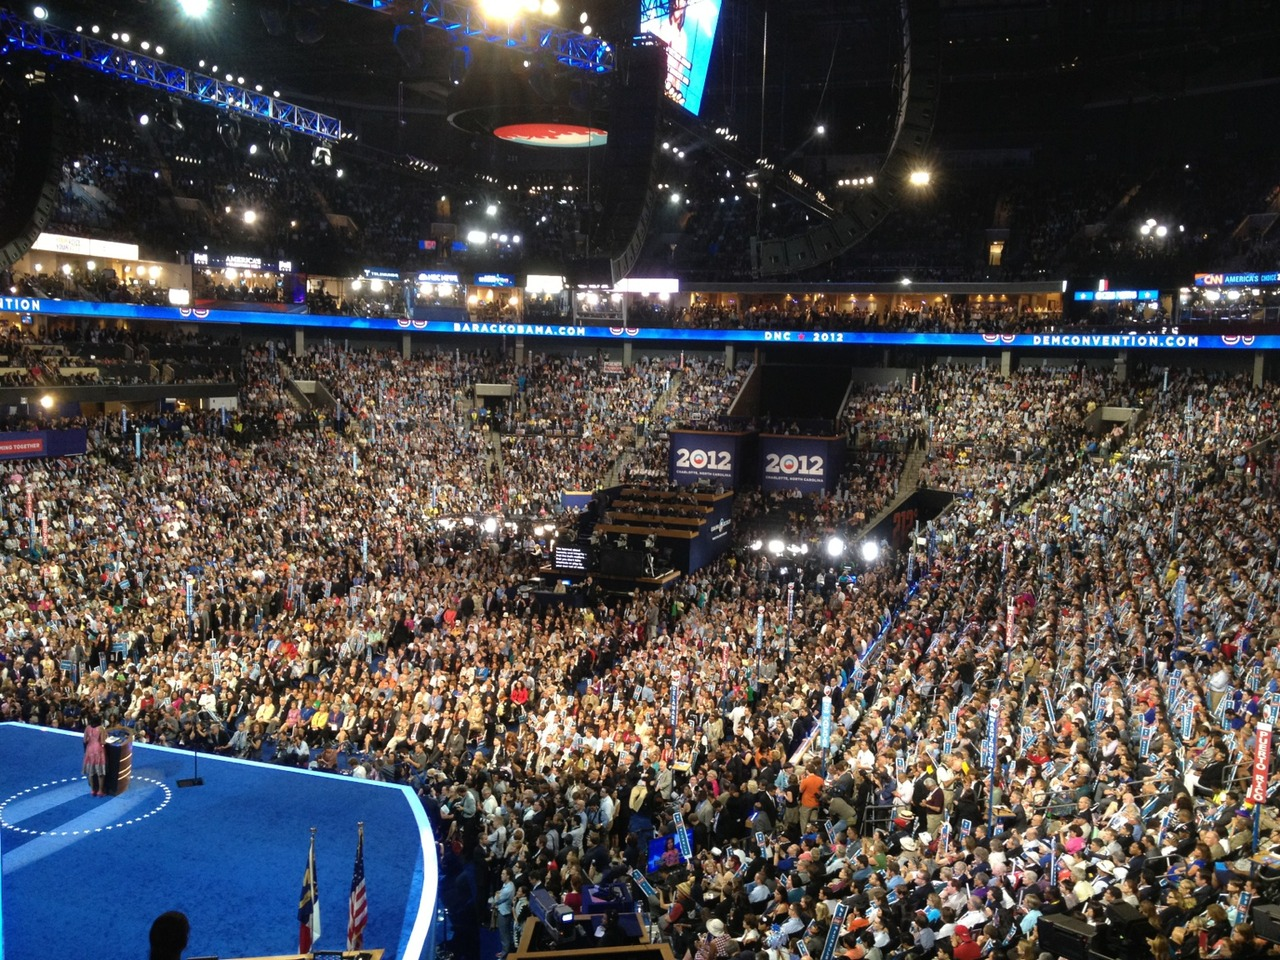 "#FLOTUS view: ""being president doesn't change who you are. It reveals who you are"" #dnc2012 – View on Path."